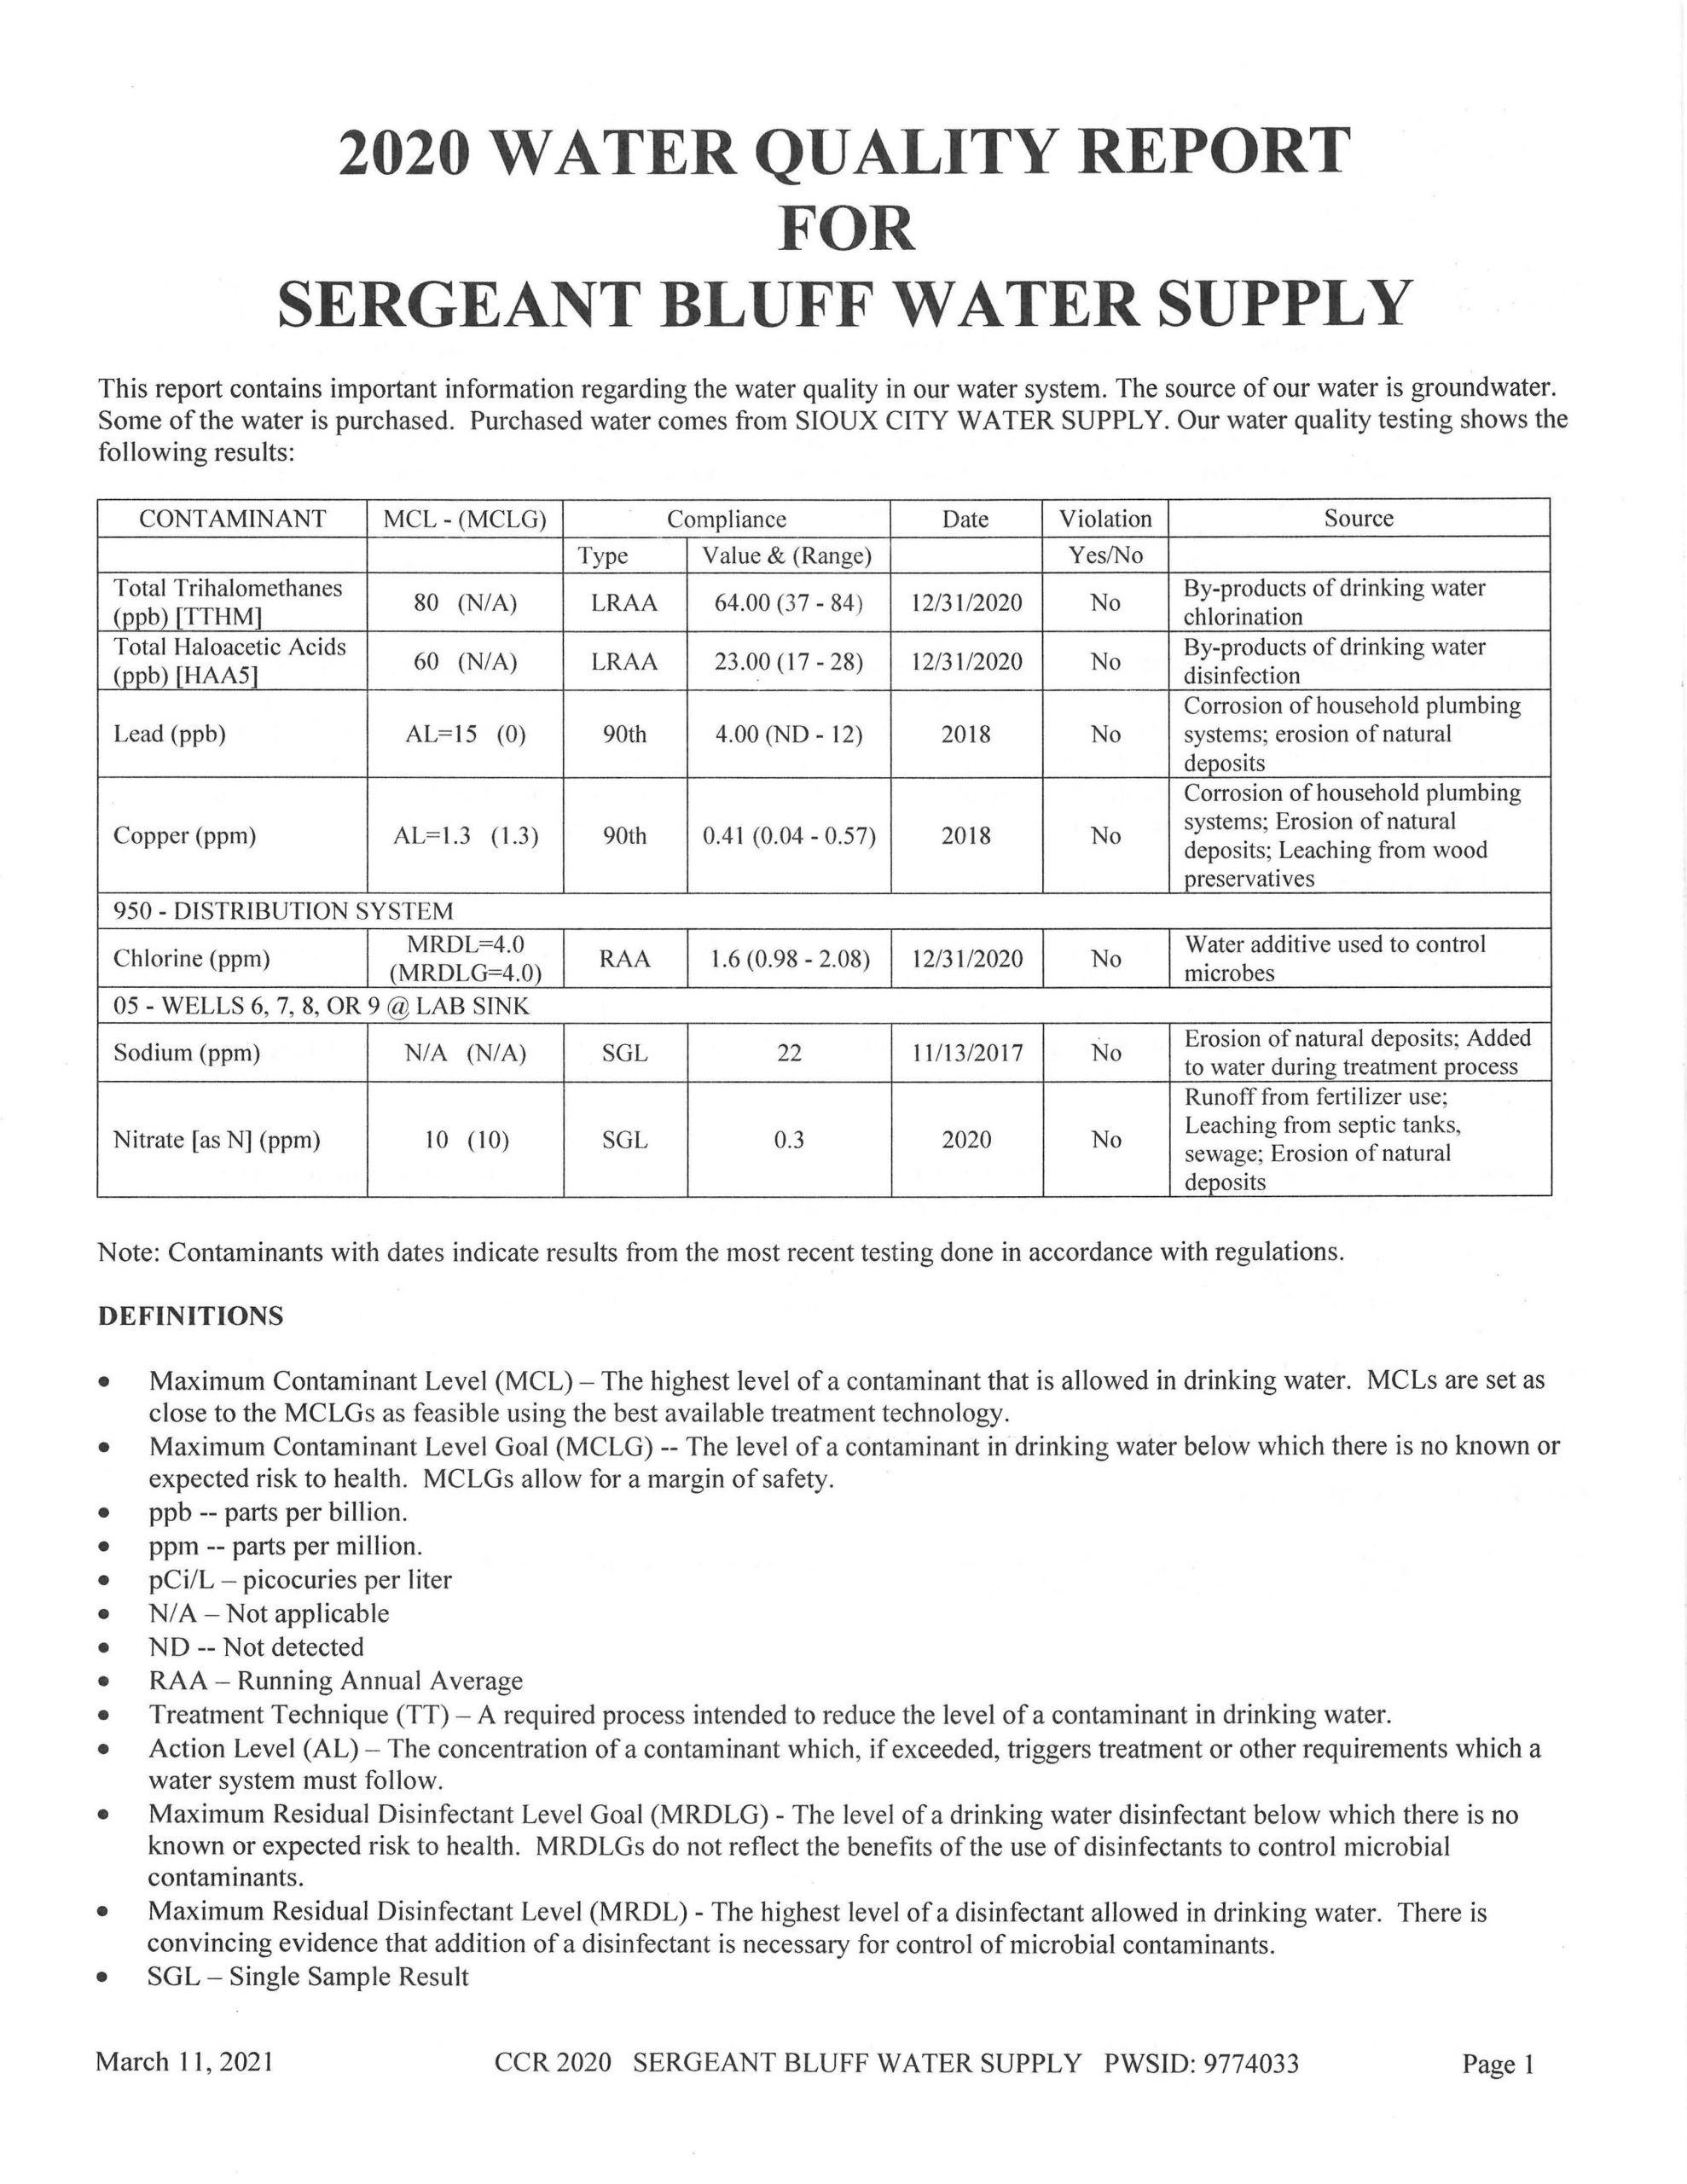 2020 Water Quality Report